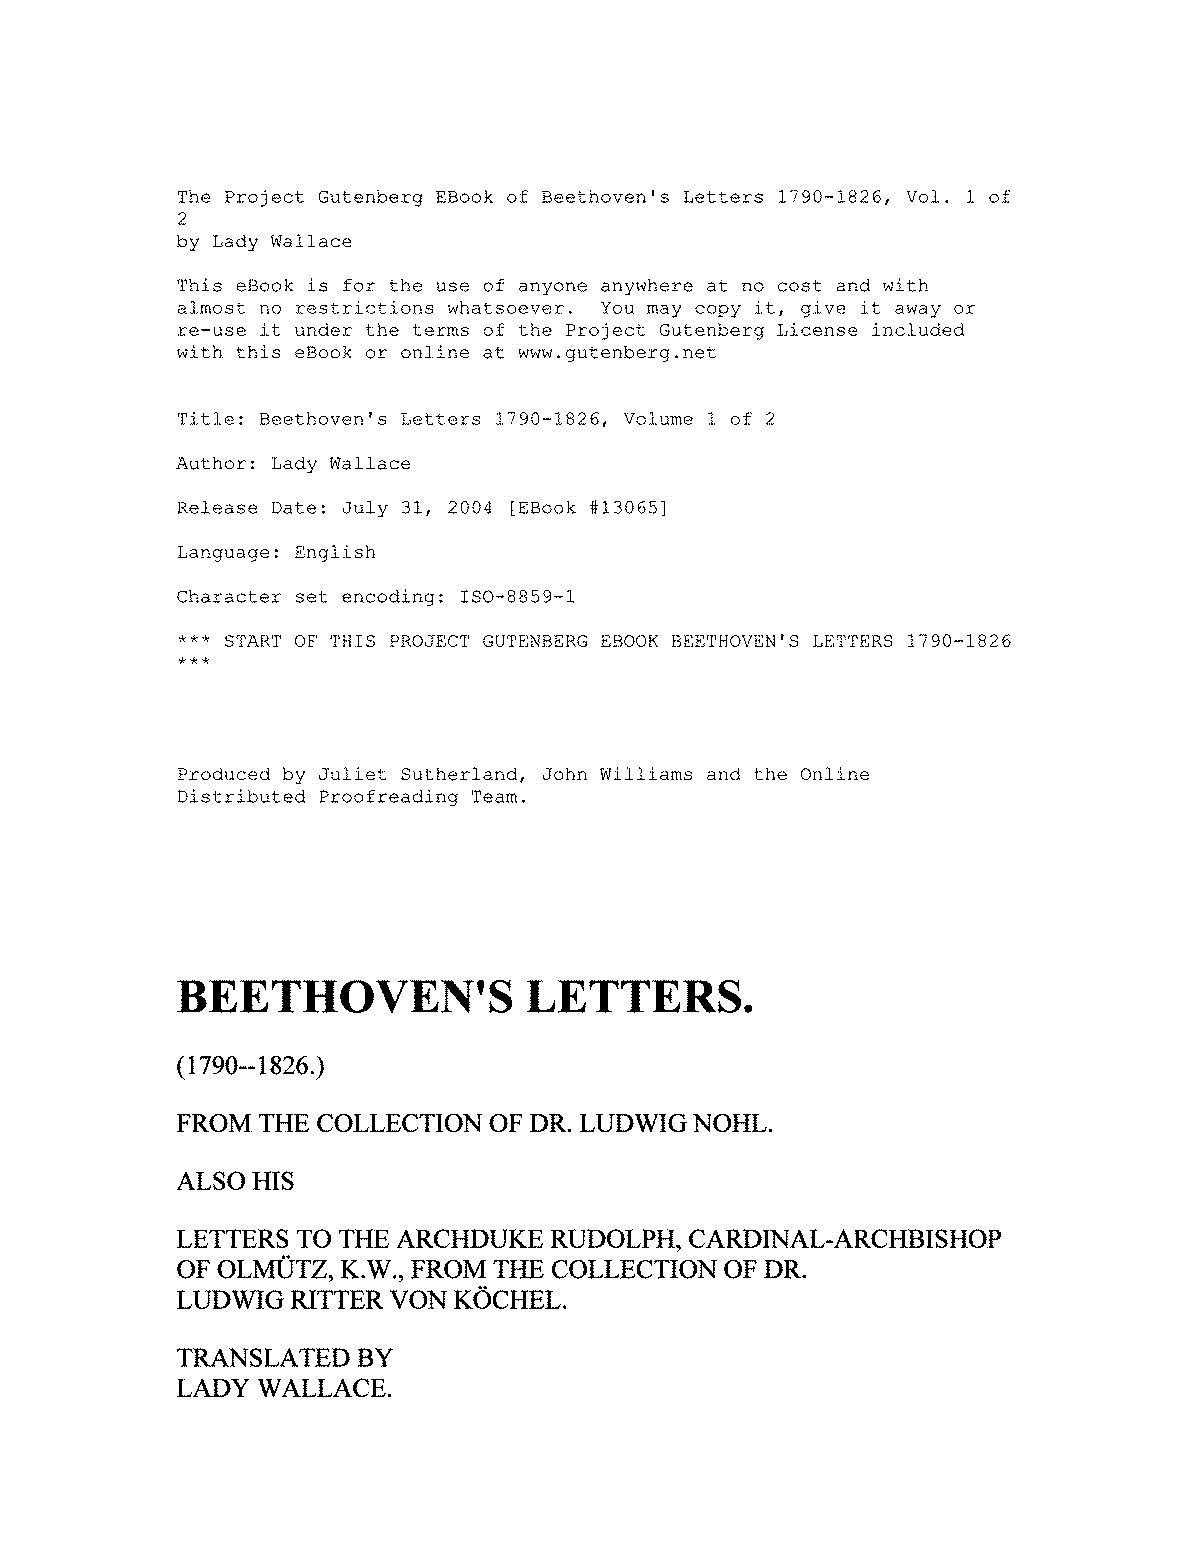 PMLP151653-Beethoven's letters.pdf